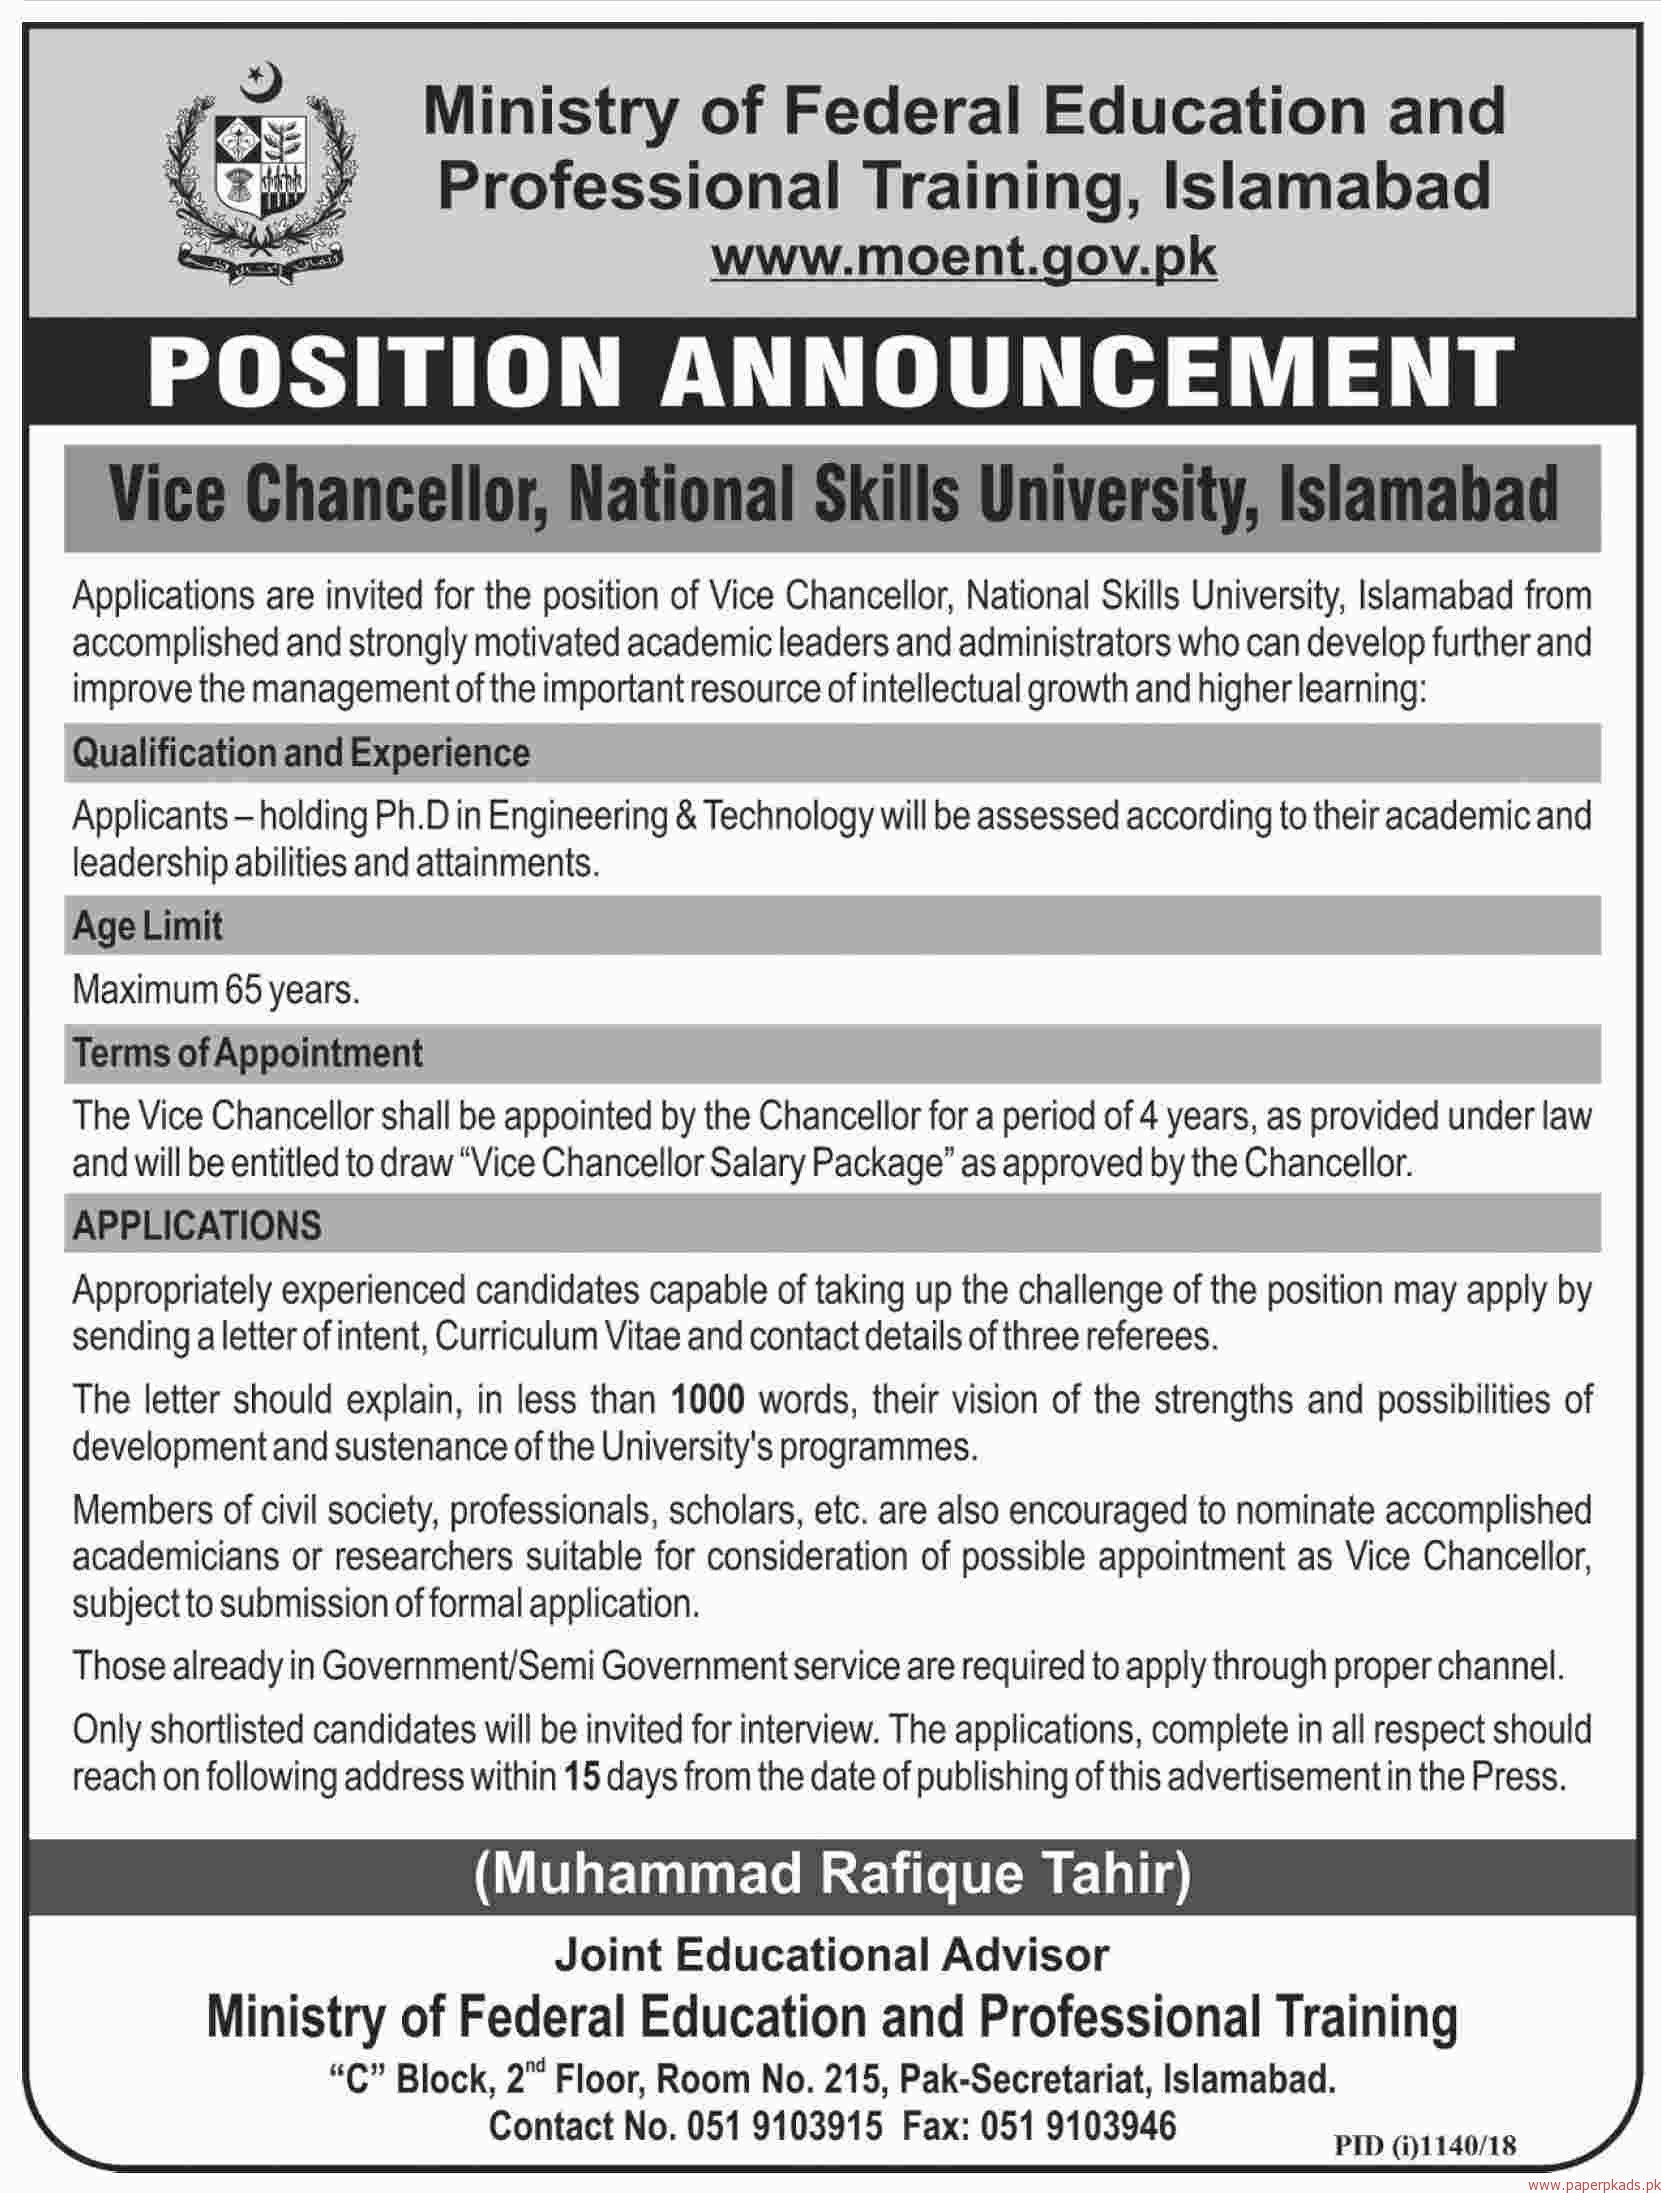 Ministry of Federal Education and Professional Training Jobs 2018 Latest